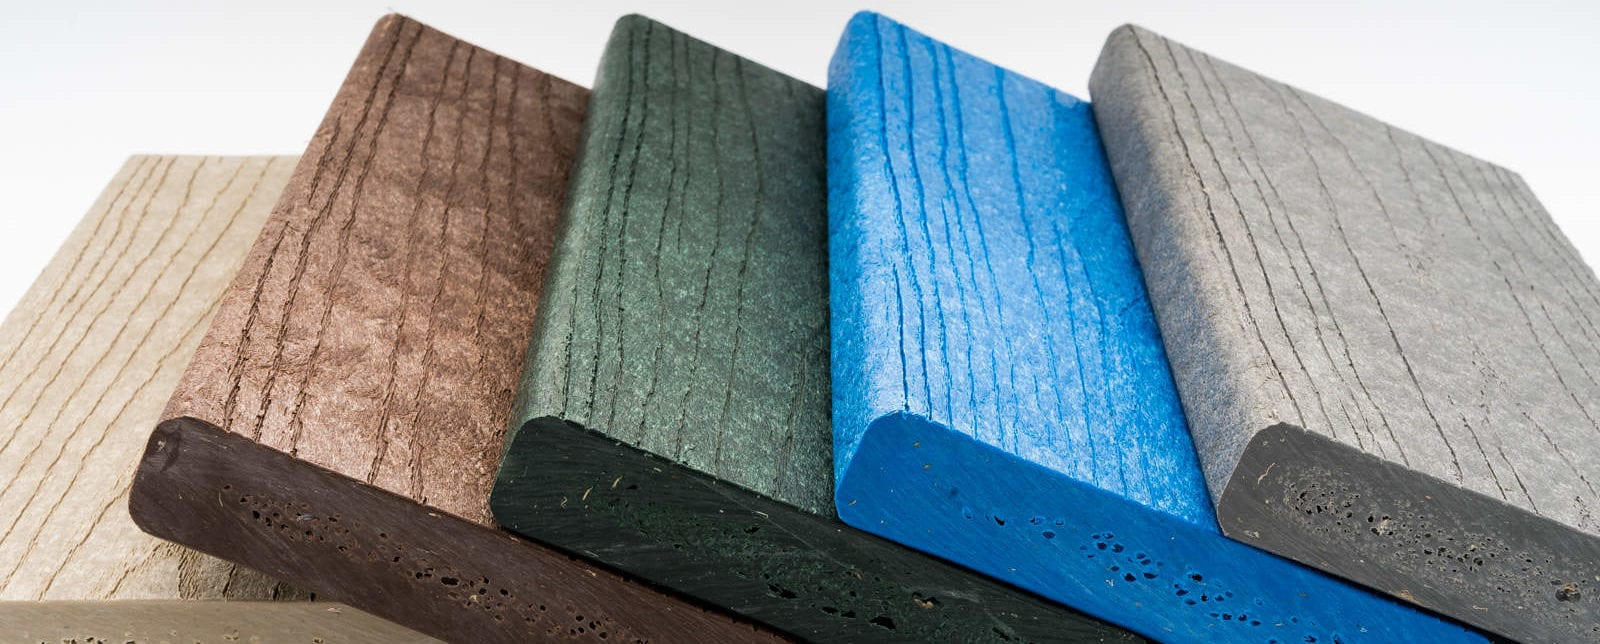 Lumber made from recycled plastic